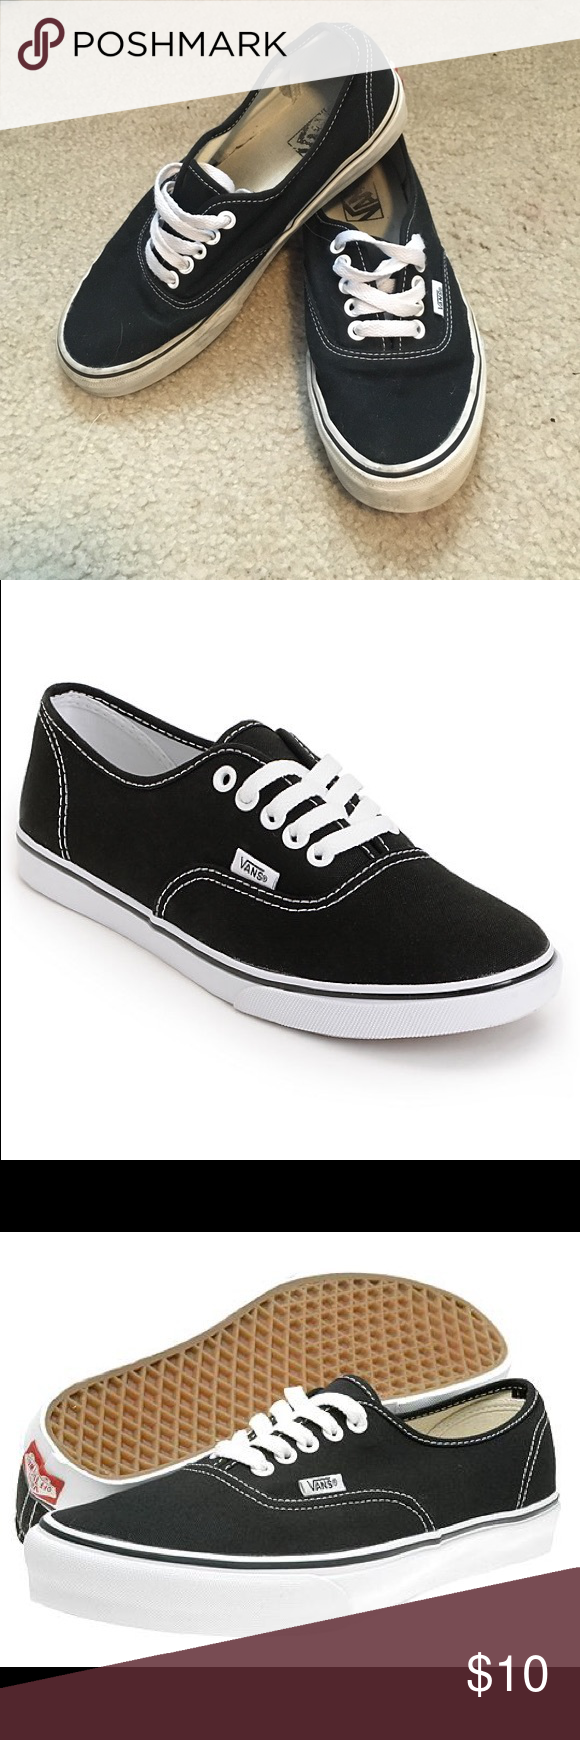 women's vans black classic vans. women's size 8. Vans Shoes Sneakers